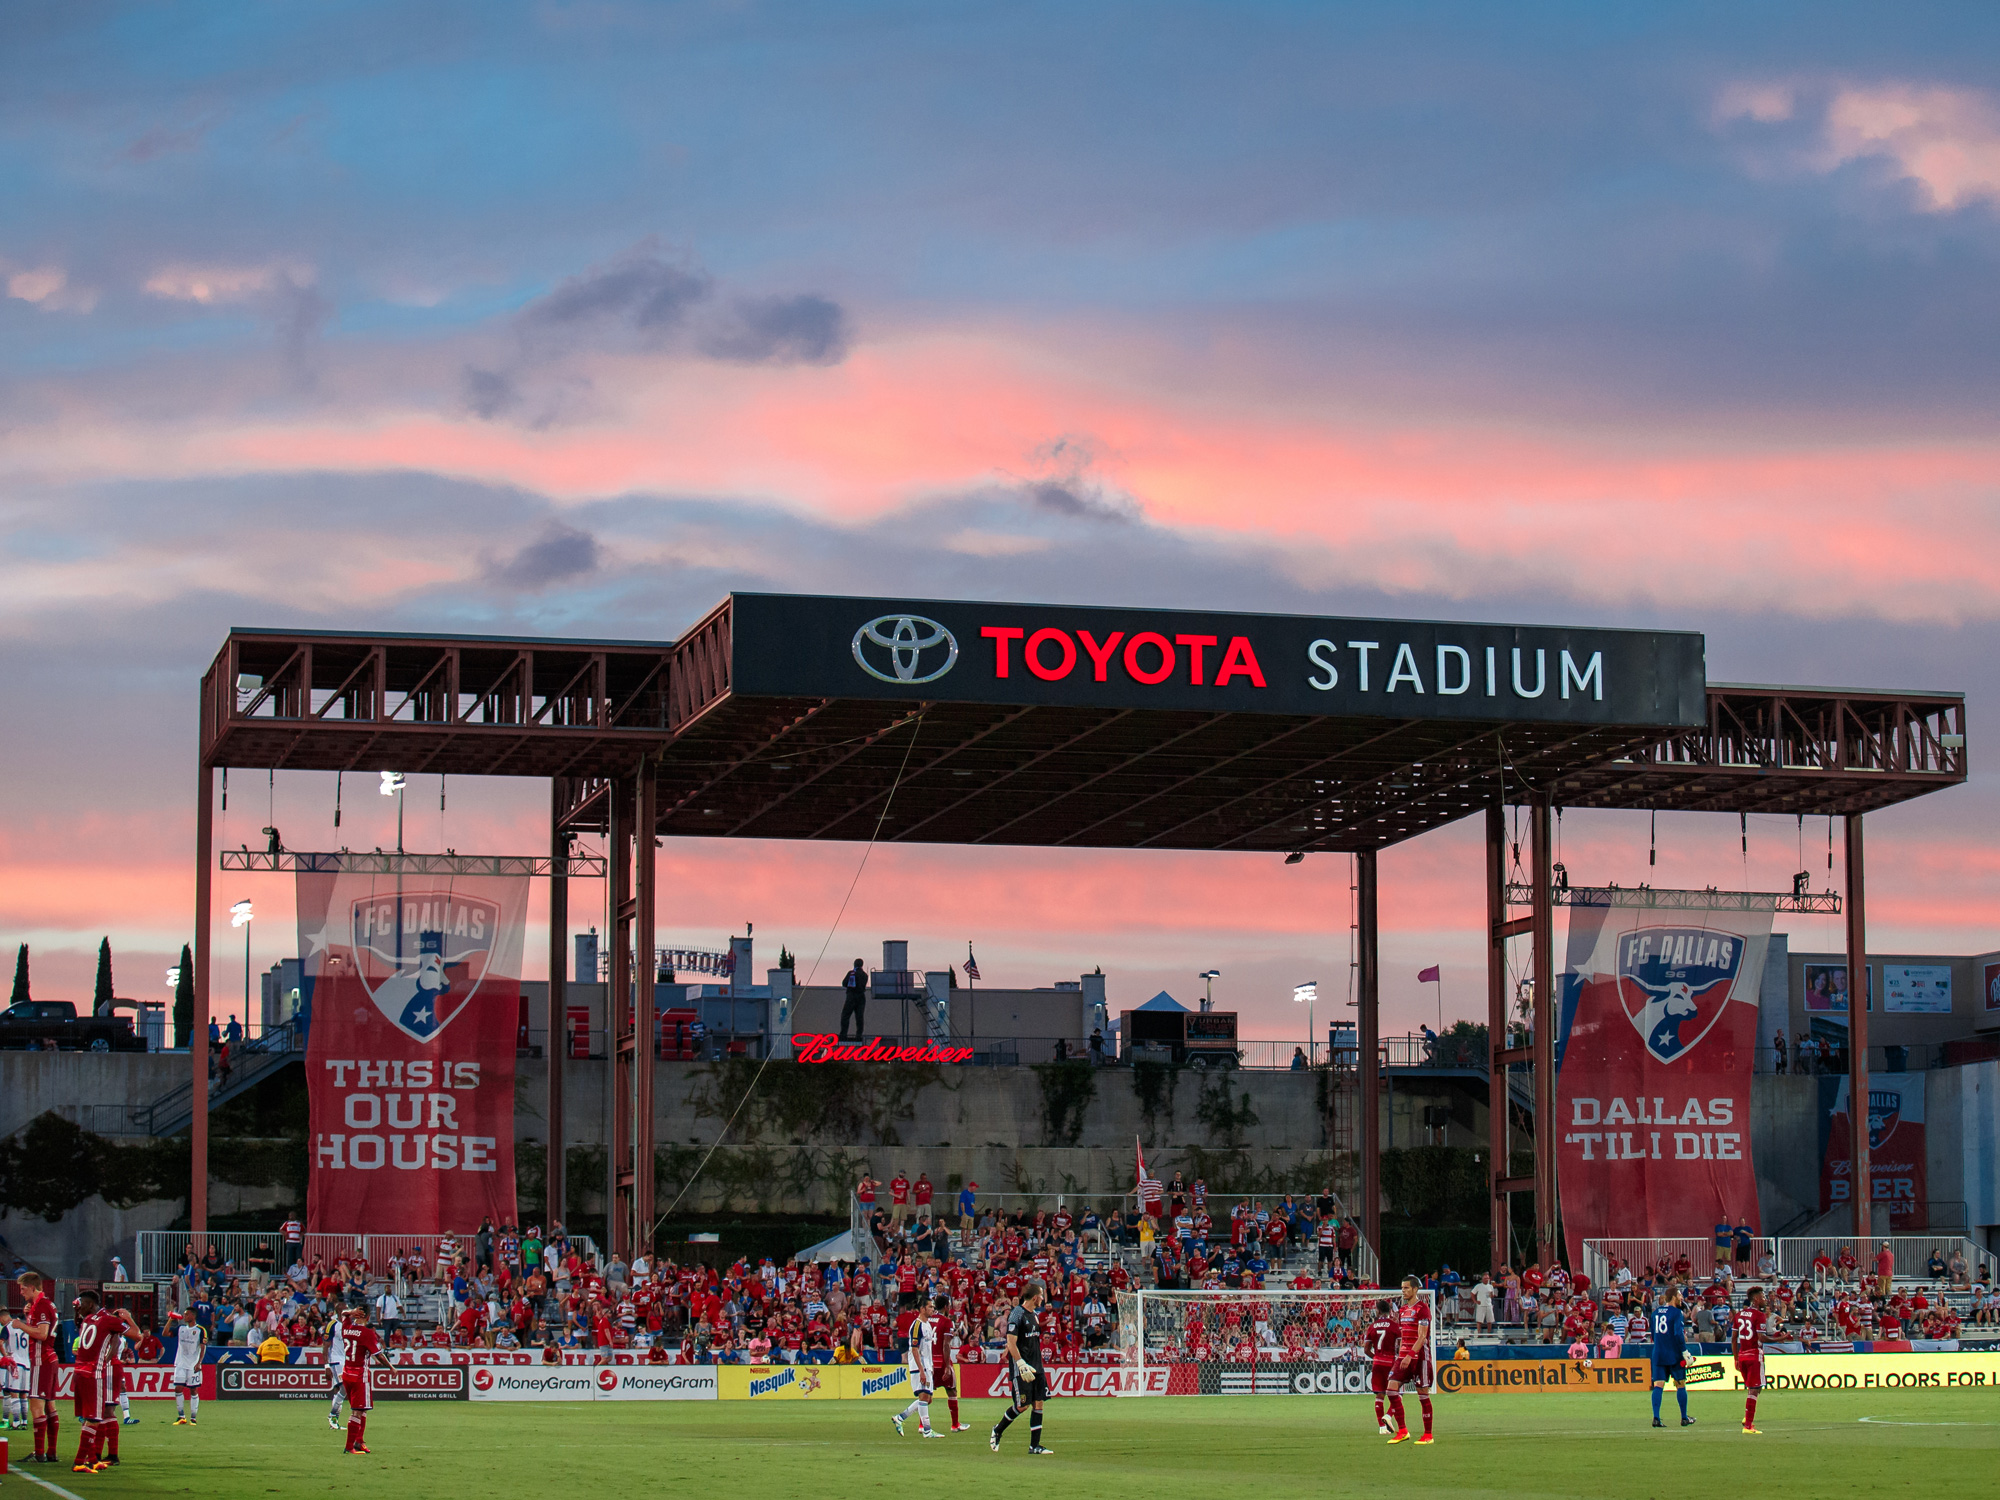 FC Dallas's home venue, Toyota Stadium